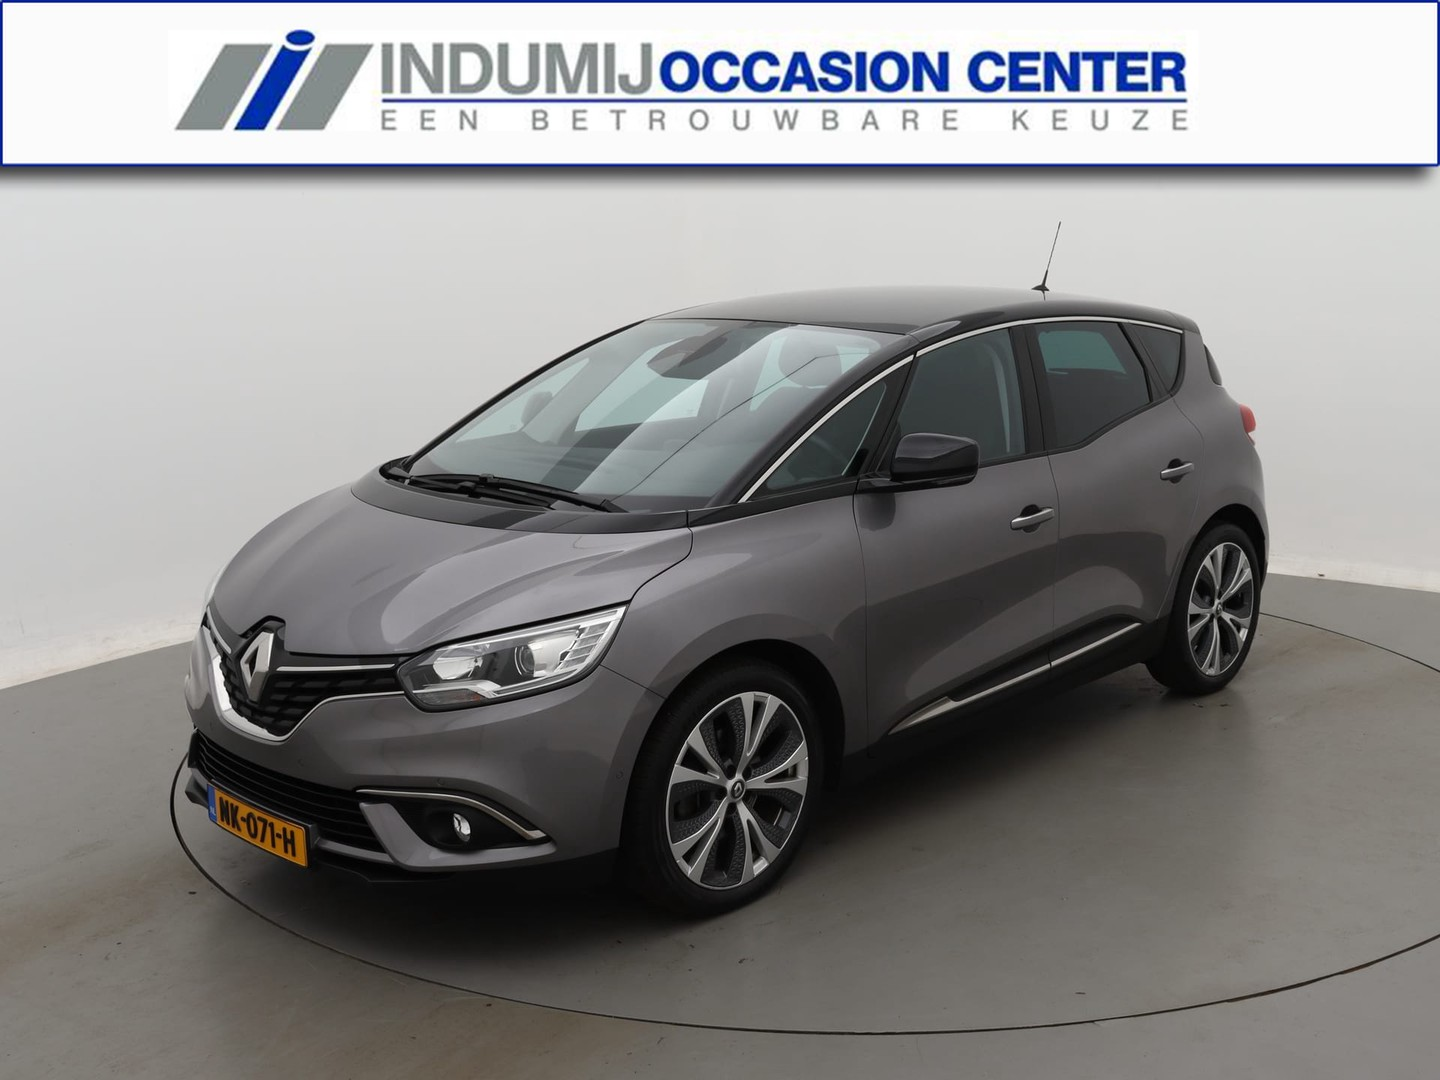 Renault Scénic Tce 130 intens // navi / cruise control // 20'' lm